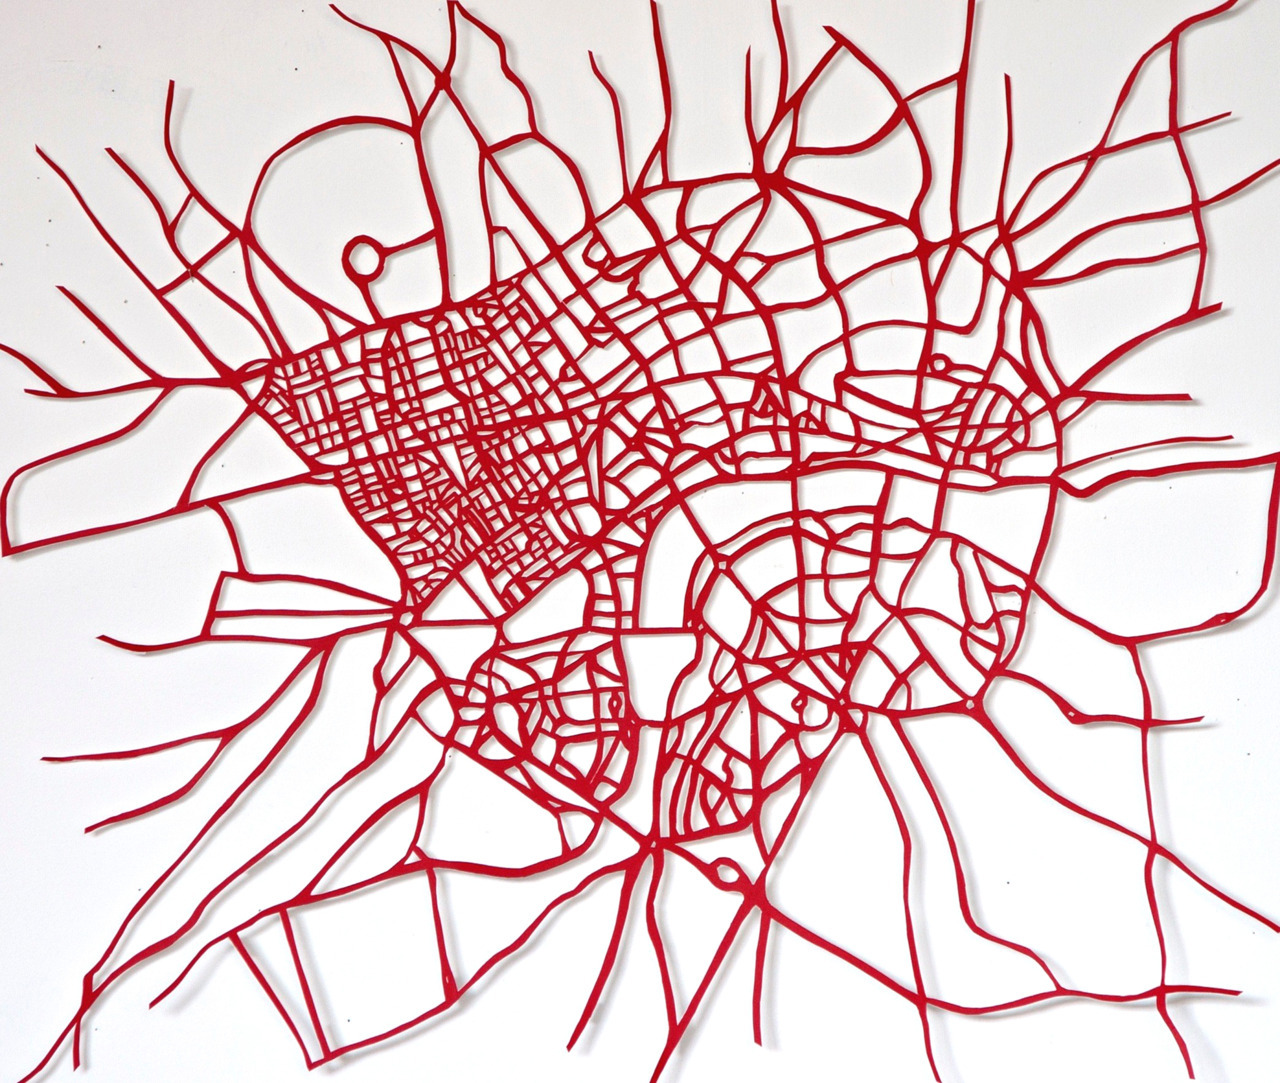 Red Road Arteries - Susan Stockwell